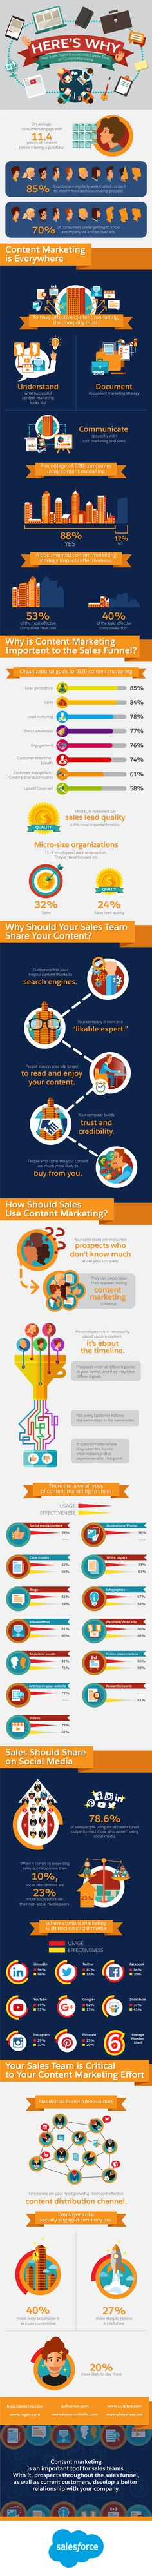 Here's Why Your Sales Team Should Invest More Time on Content Marketing [Infographic]